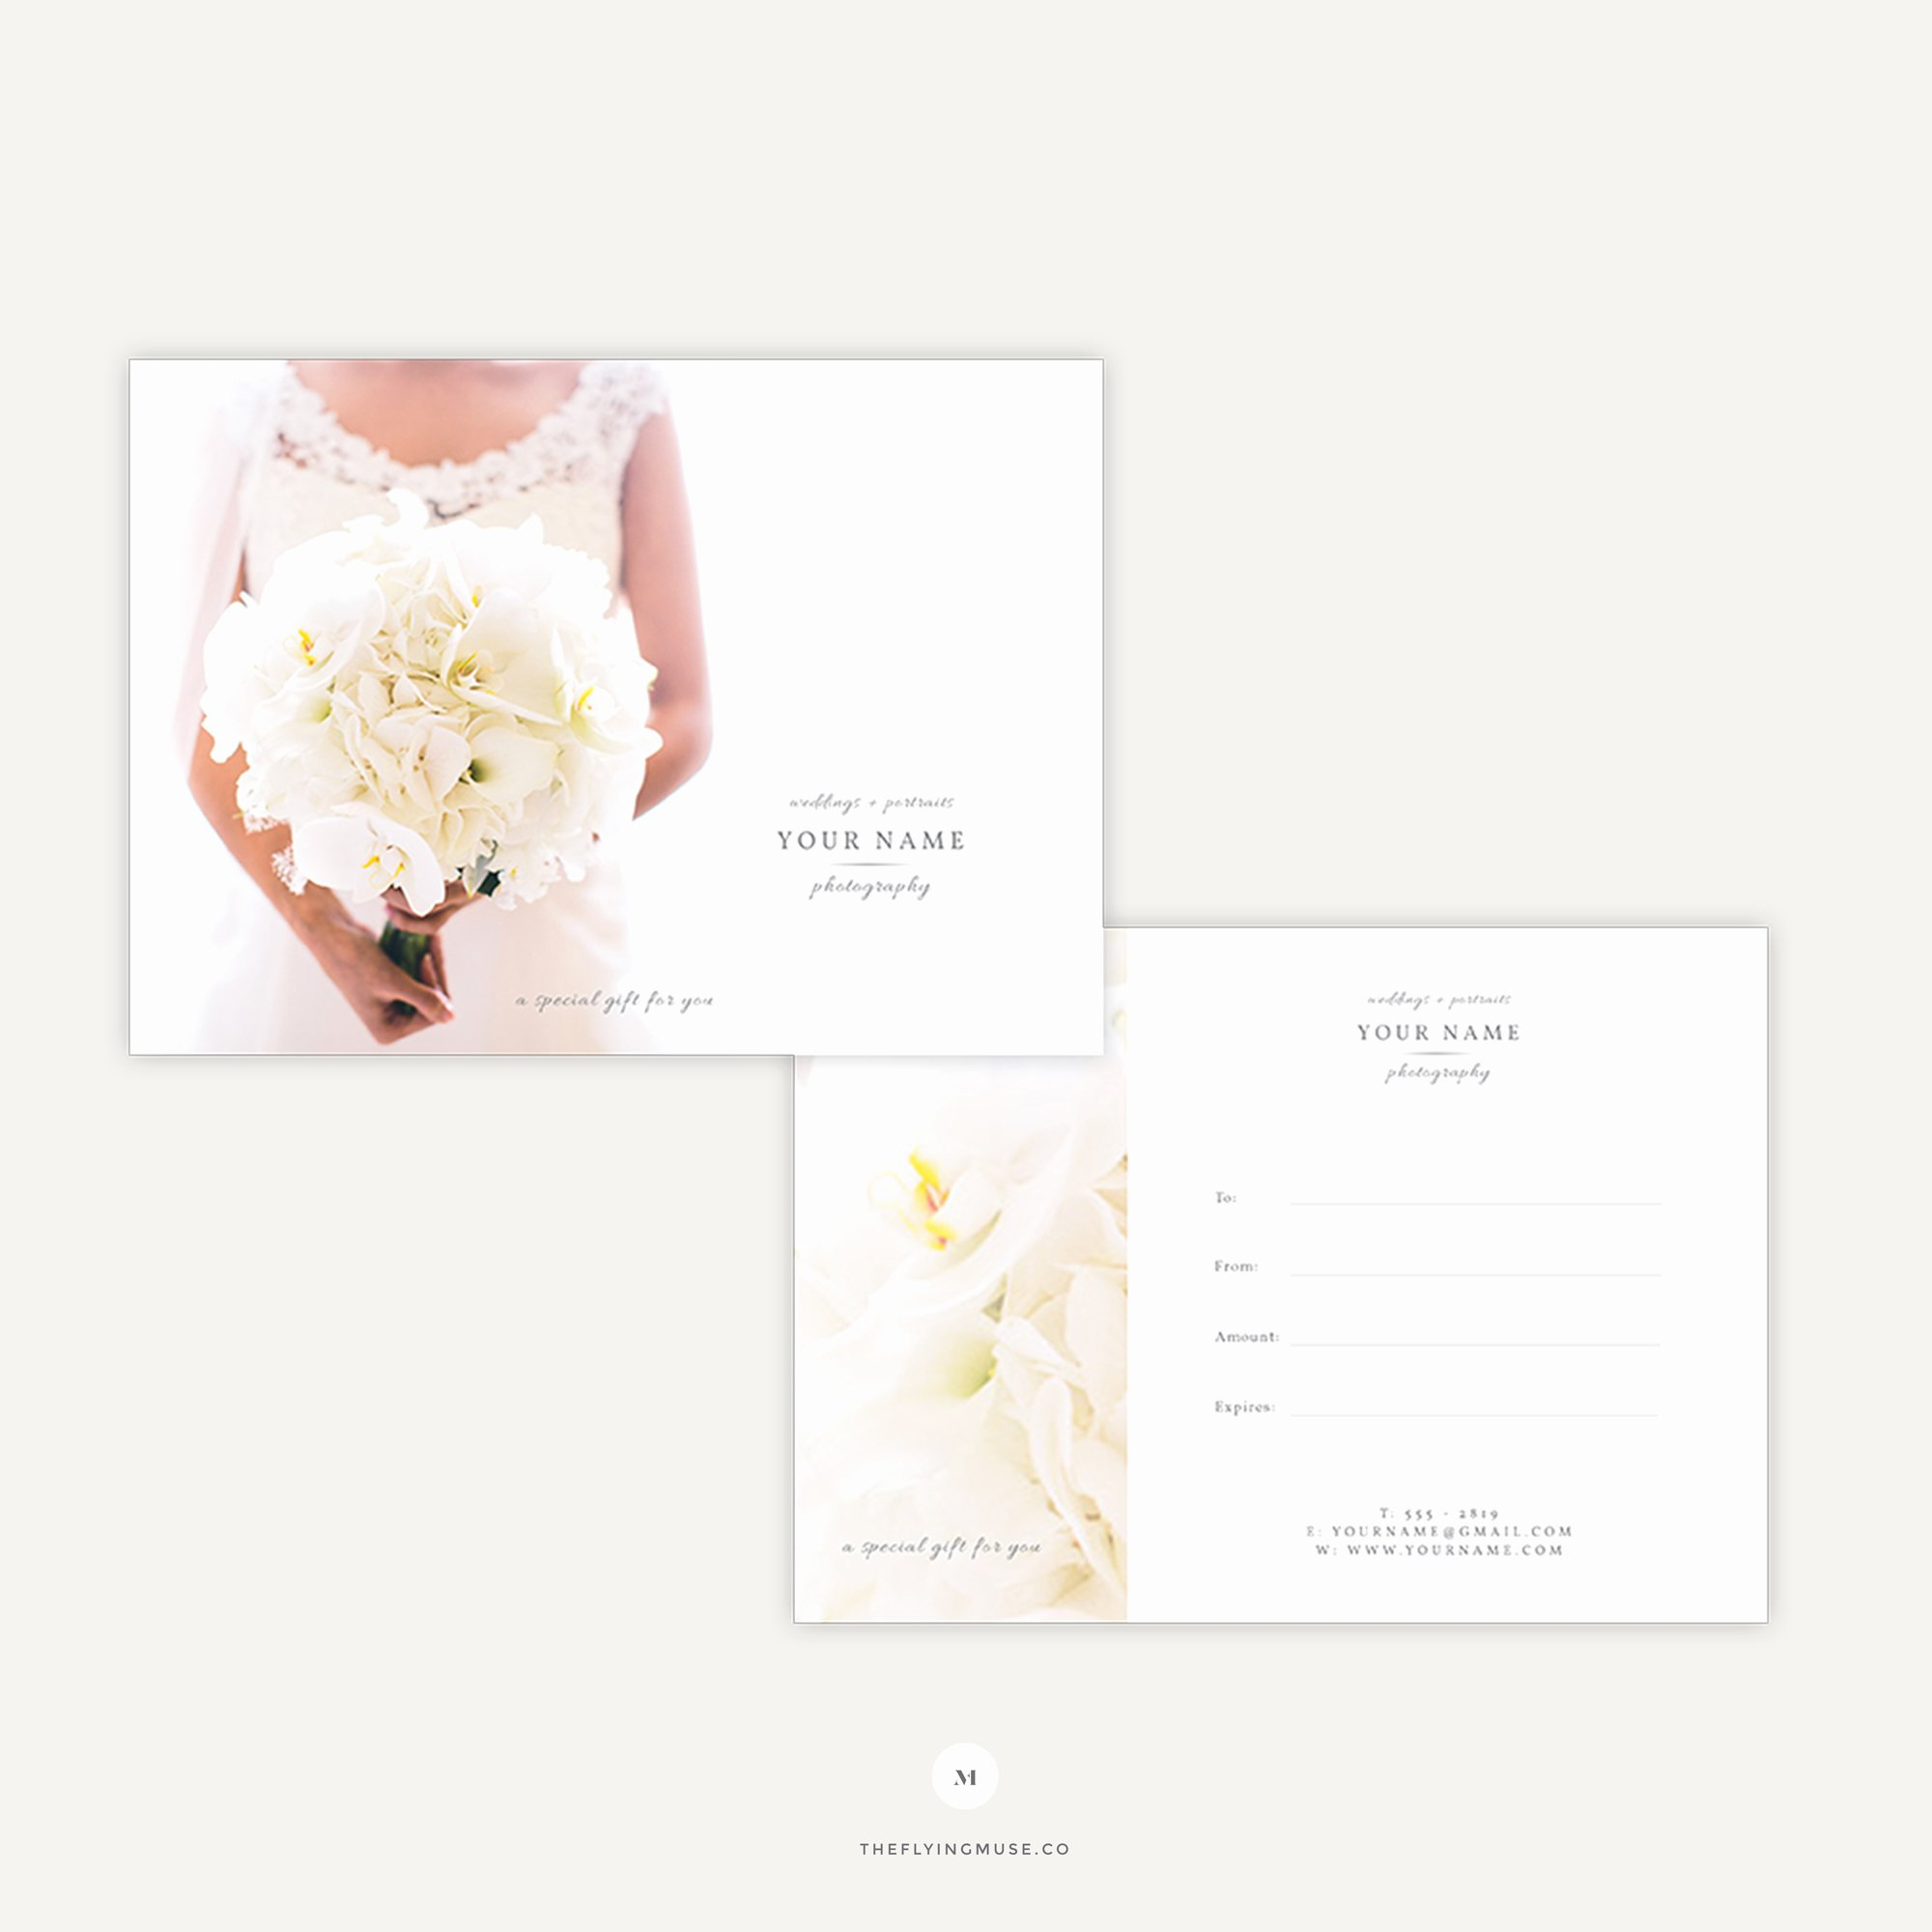 Elegant Gift Certificate Template Inspirational Elegant Gift Certificate Template for Wedding